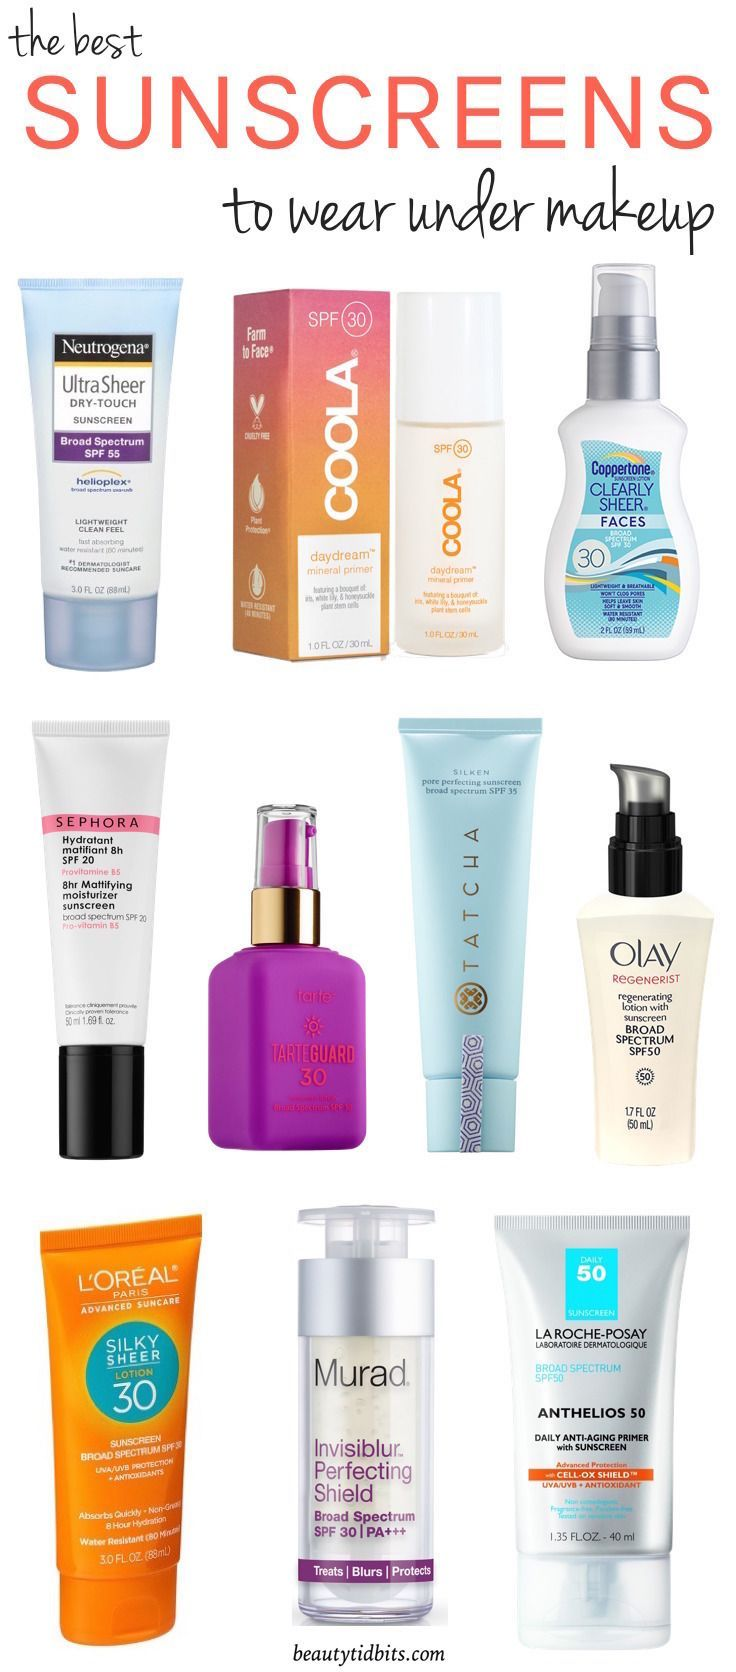 Looking for a sunscreen that wears beautifully under makeup? Click through to find the best face sunscreens that offer all of the sun protection, none of the frustration!